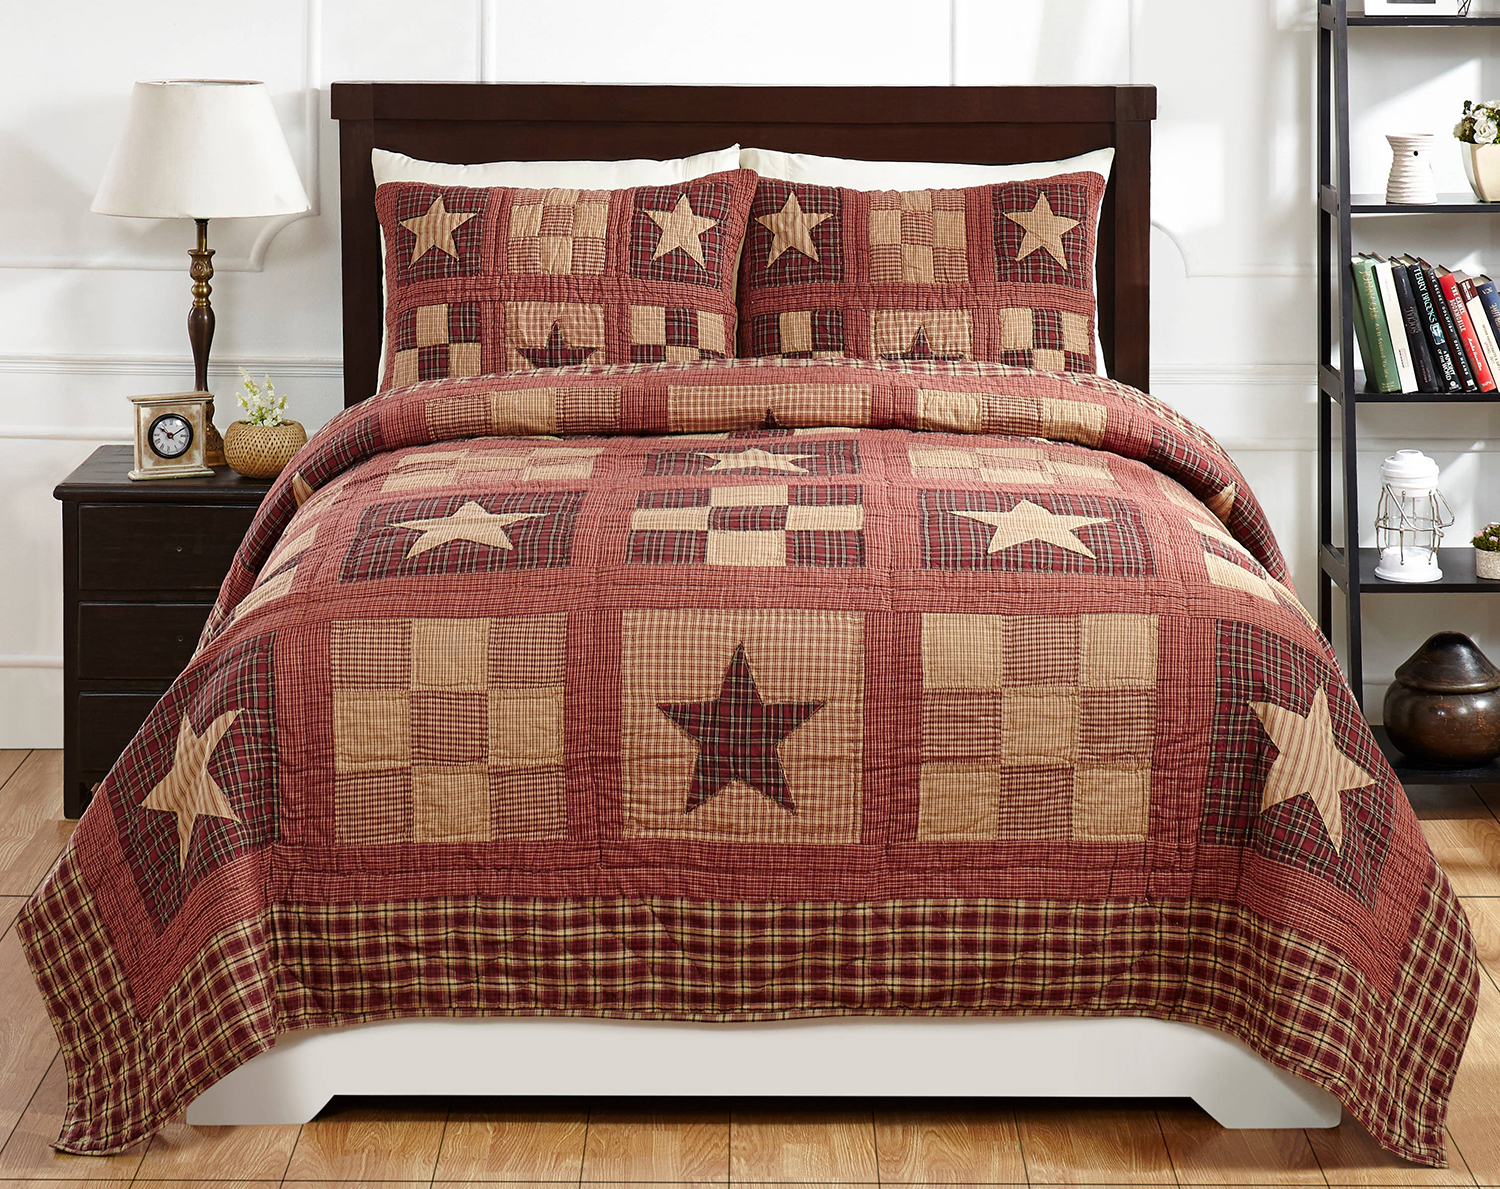 Bradford Star By Olivias Heartland Quilts